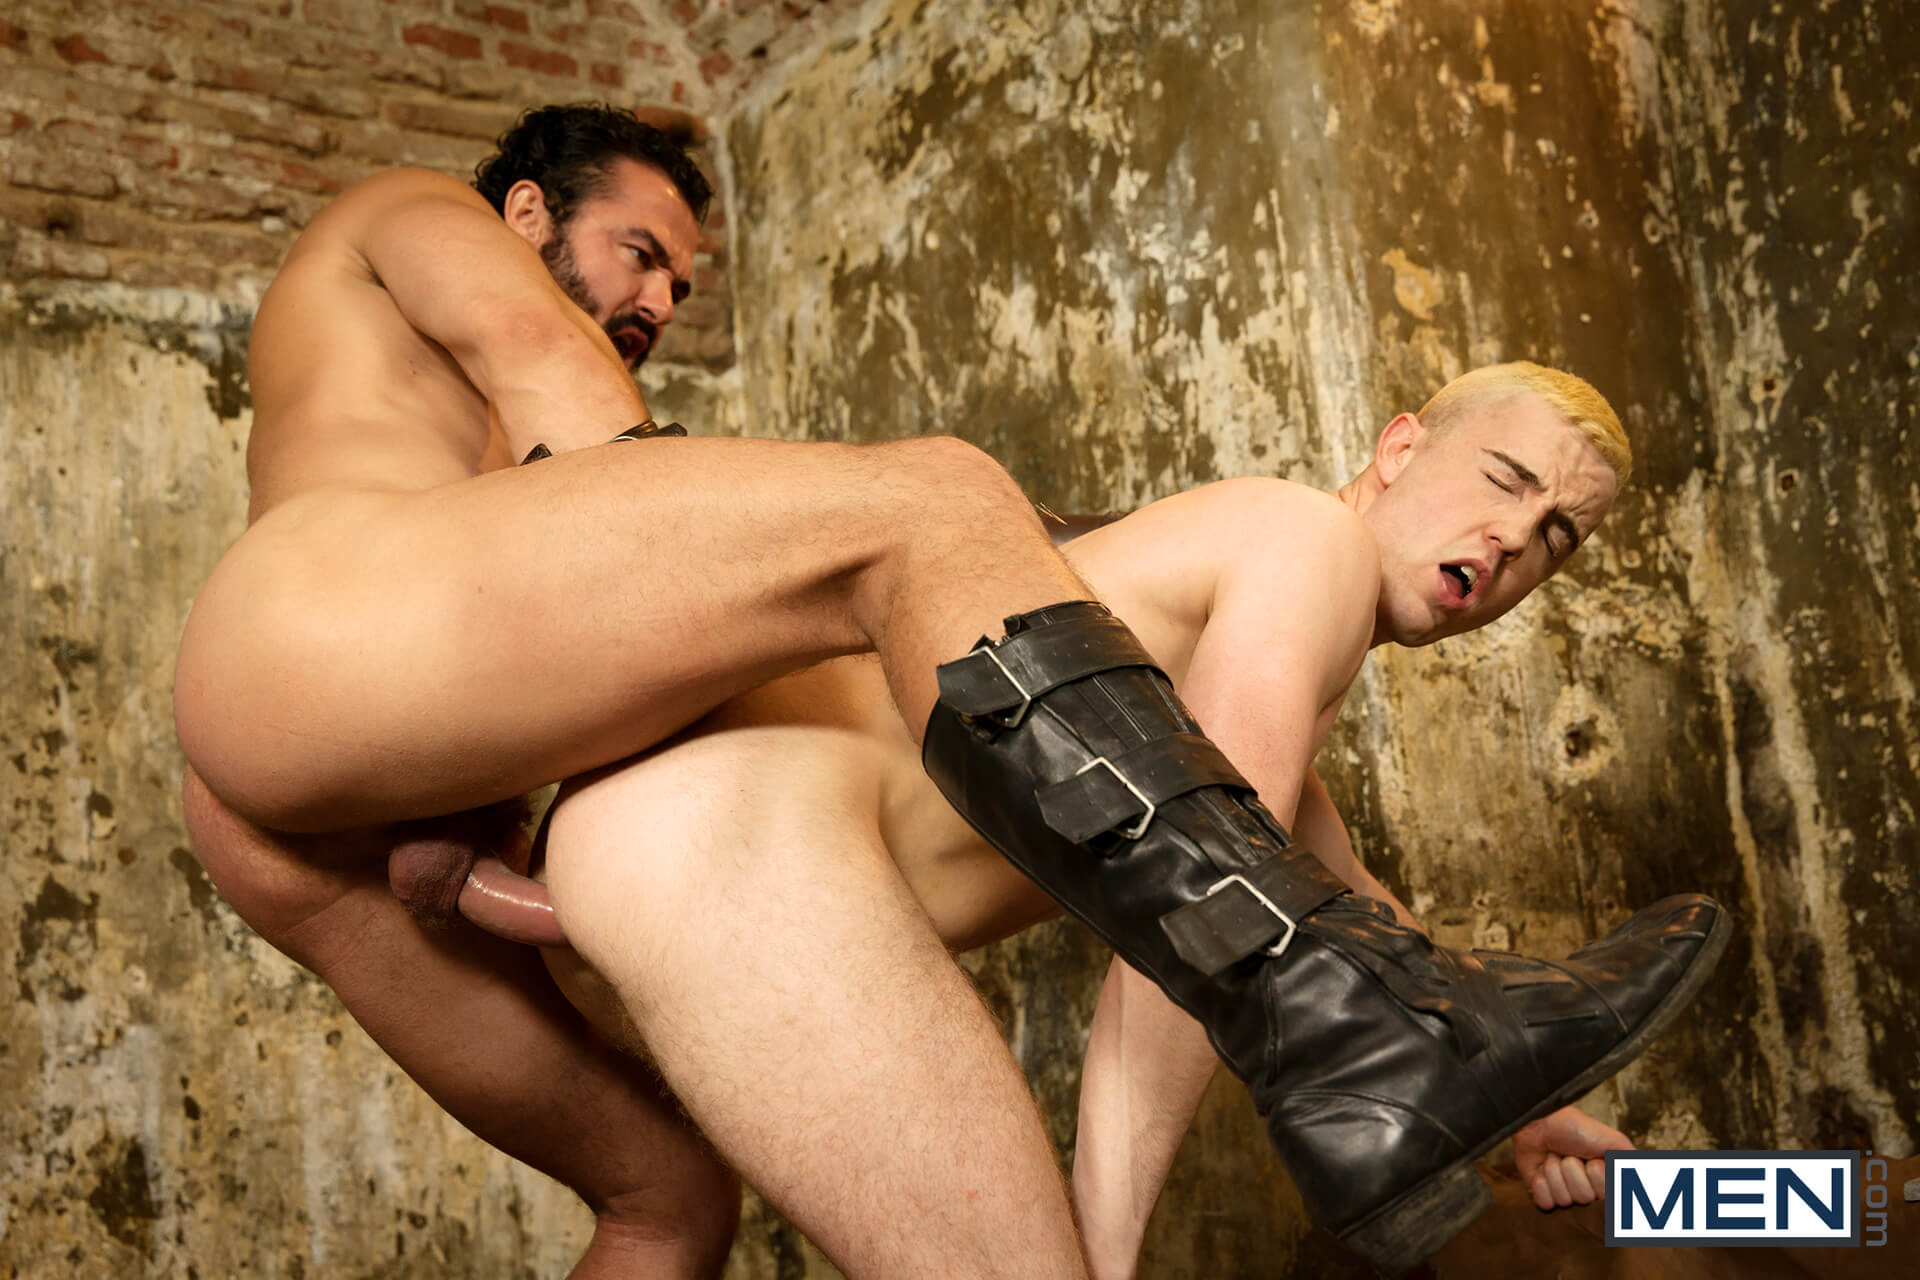 men drill my hole gay of thrones part 7 jessy ares jp dubois gay porn blog image 22